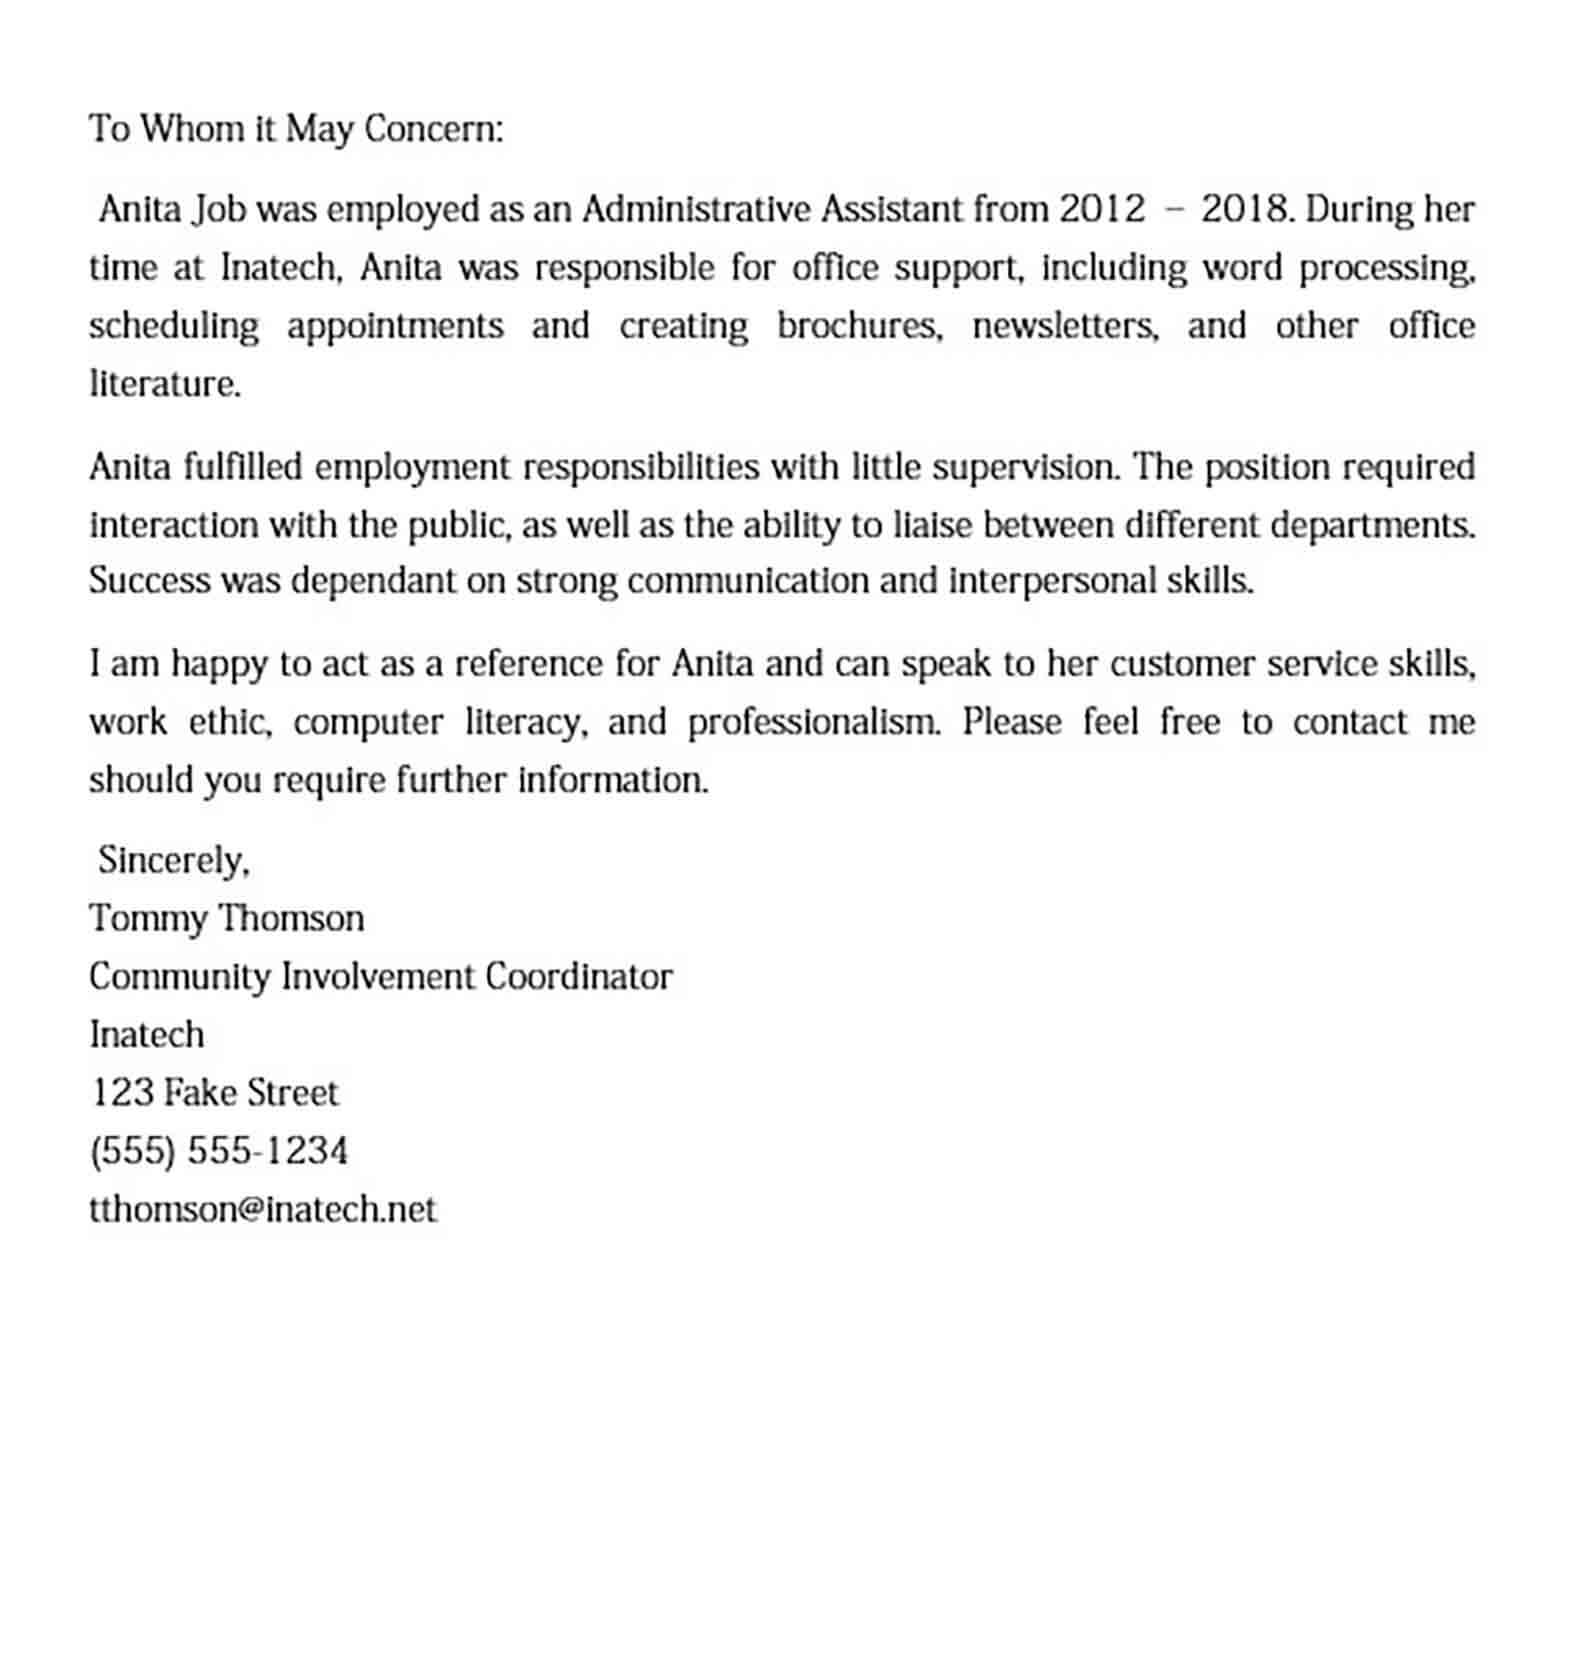 Recommendation Letter Sample For Job from moussyusa.com